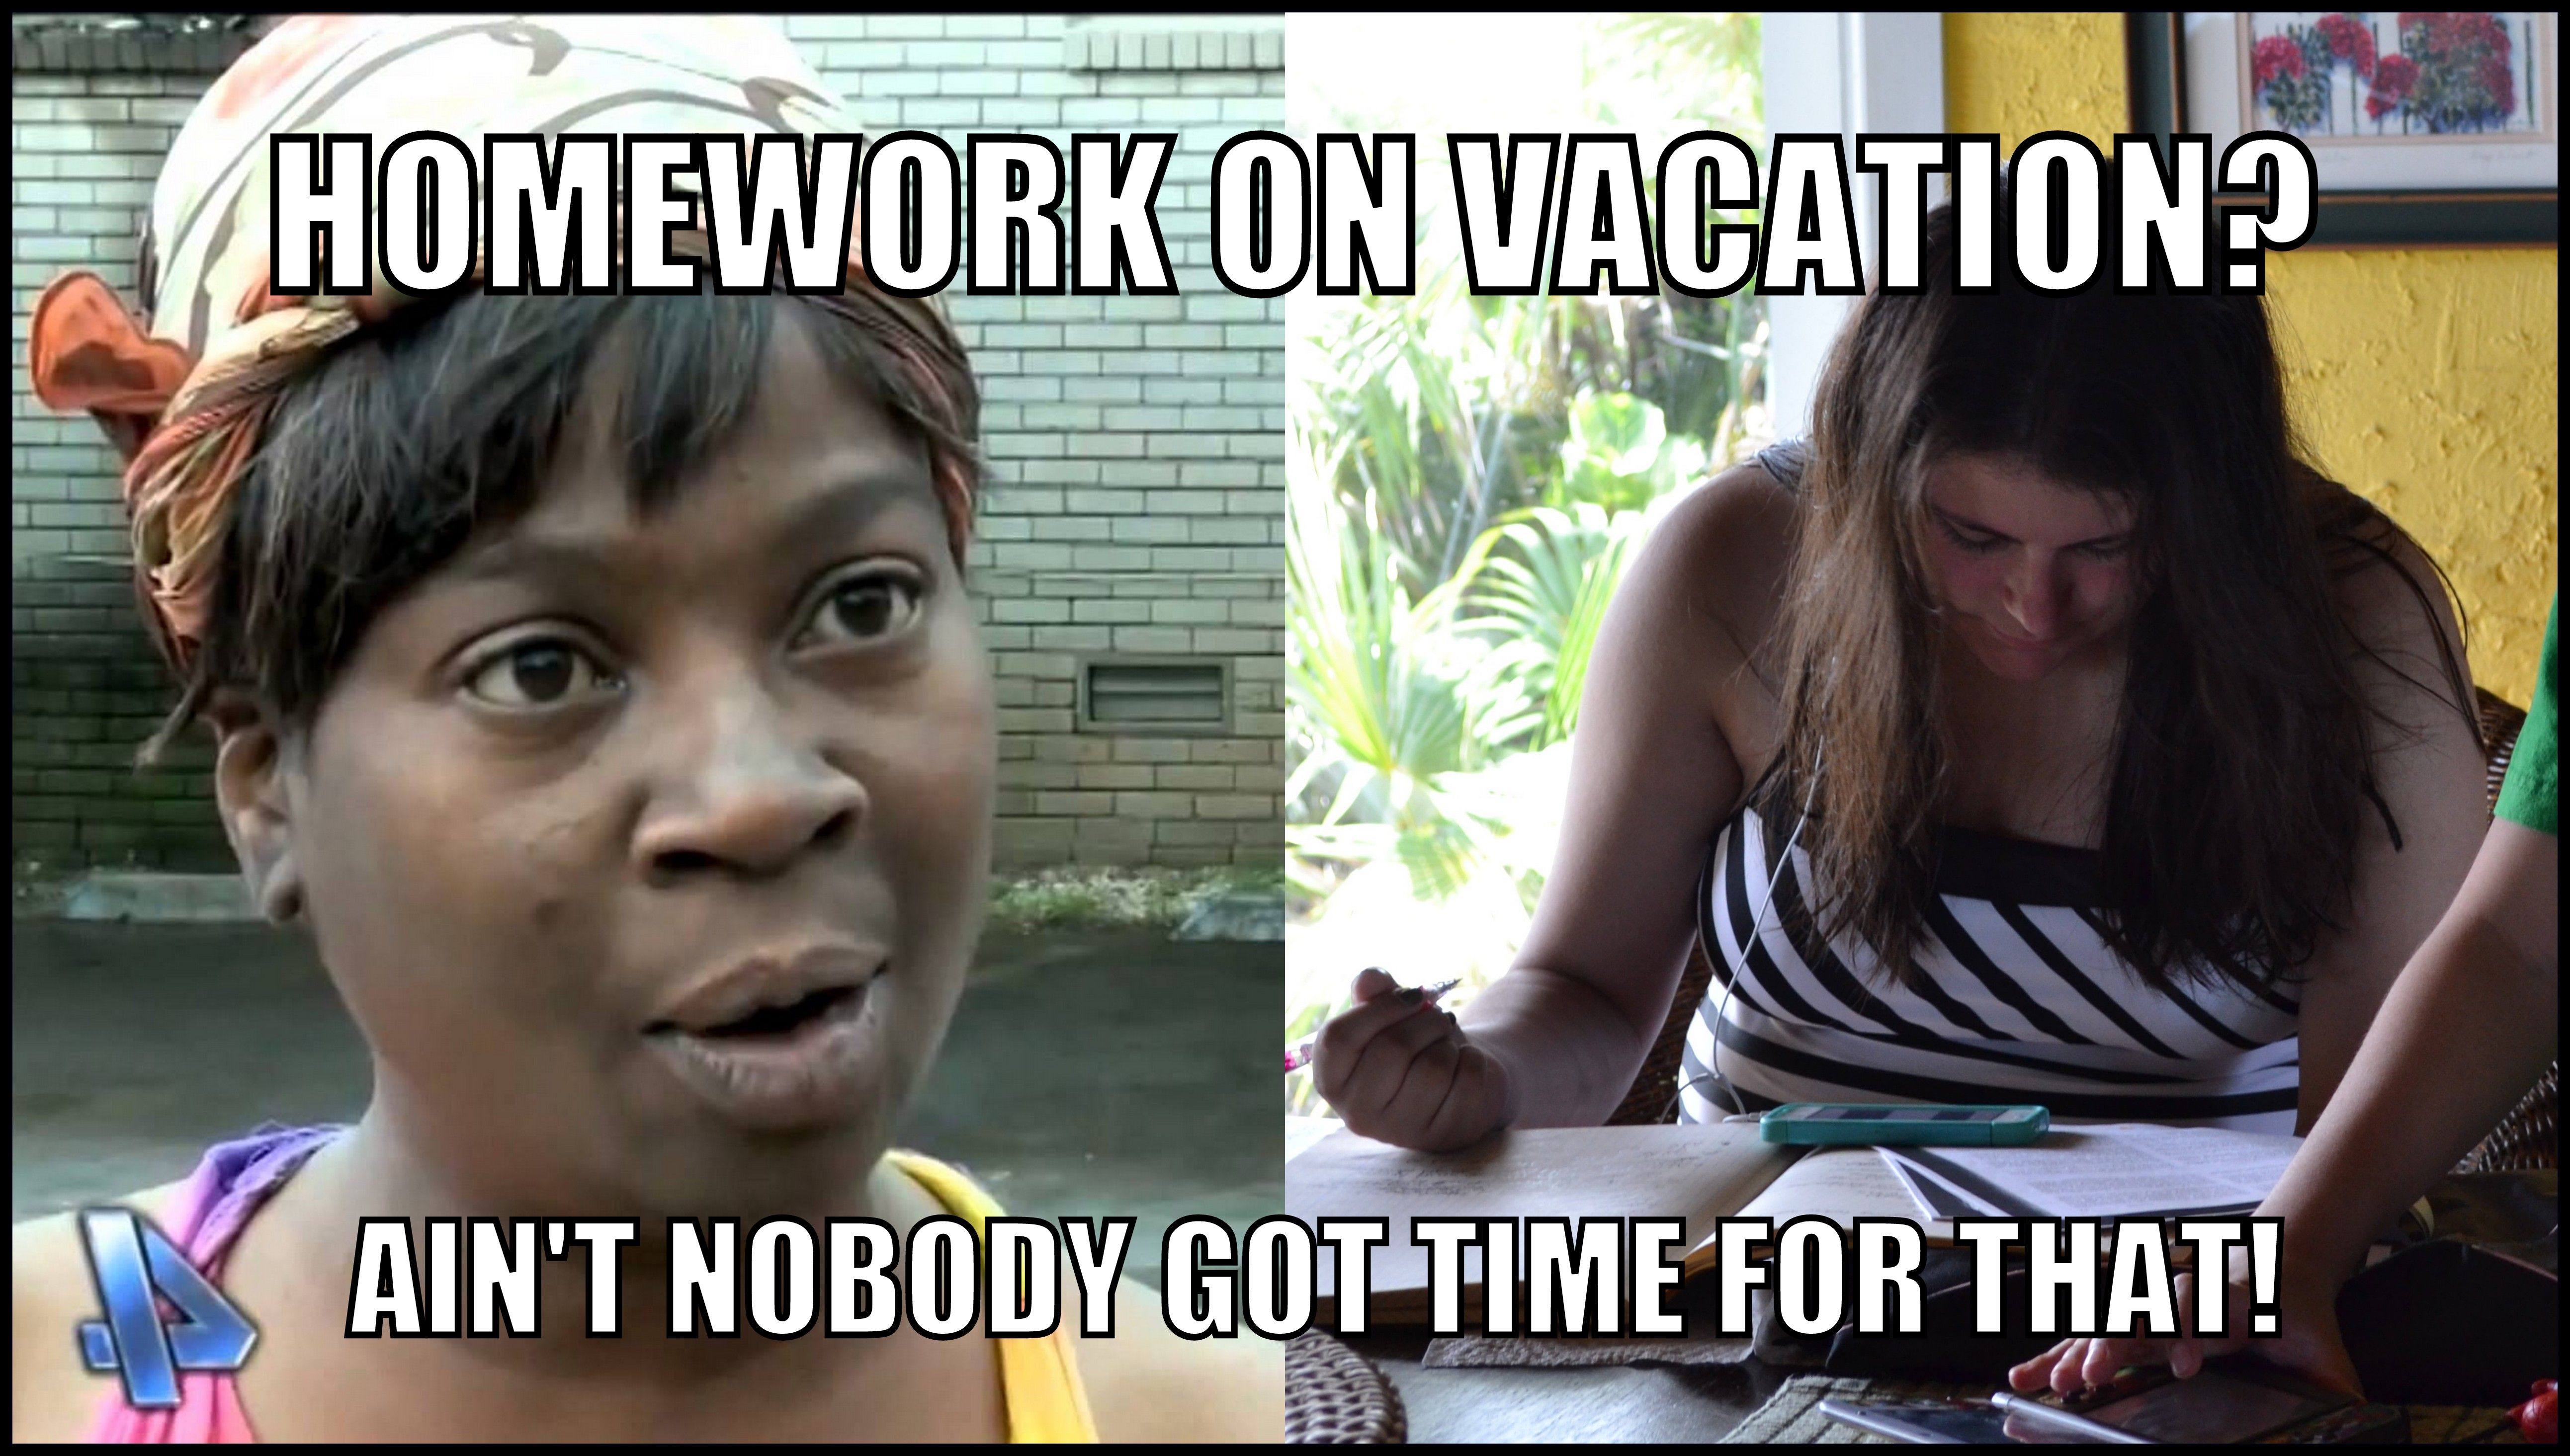 Homework on vacation meme vacation meme homework vacations holiday meme vacation